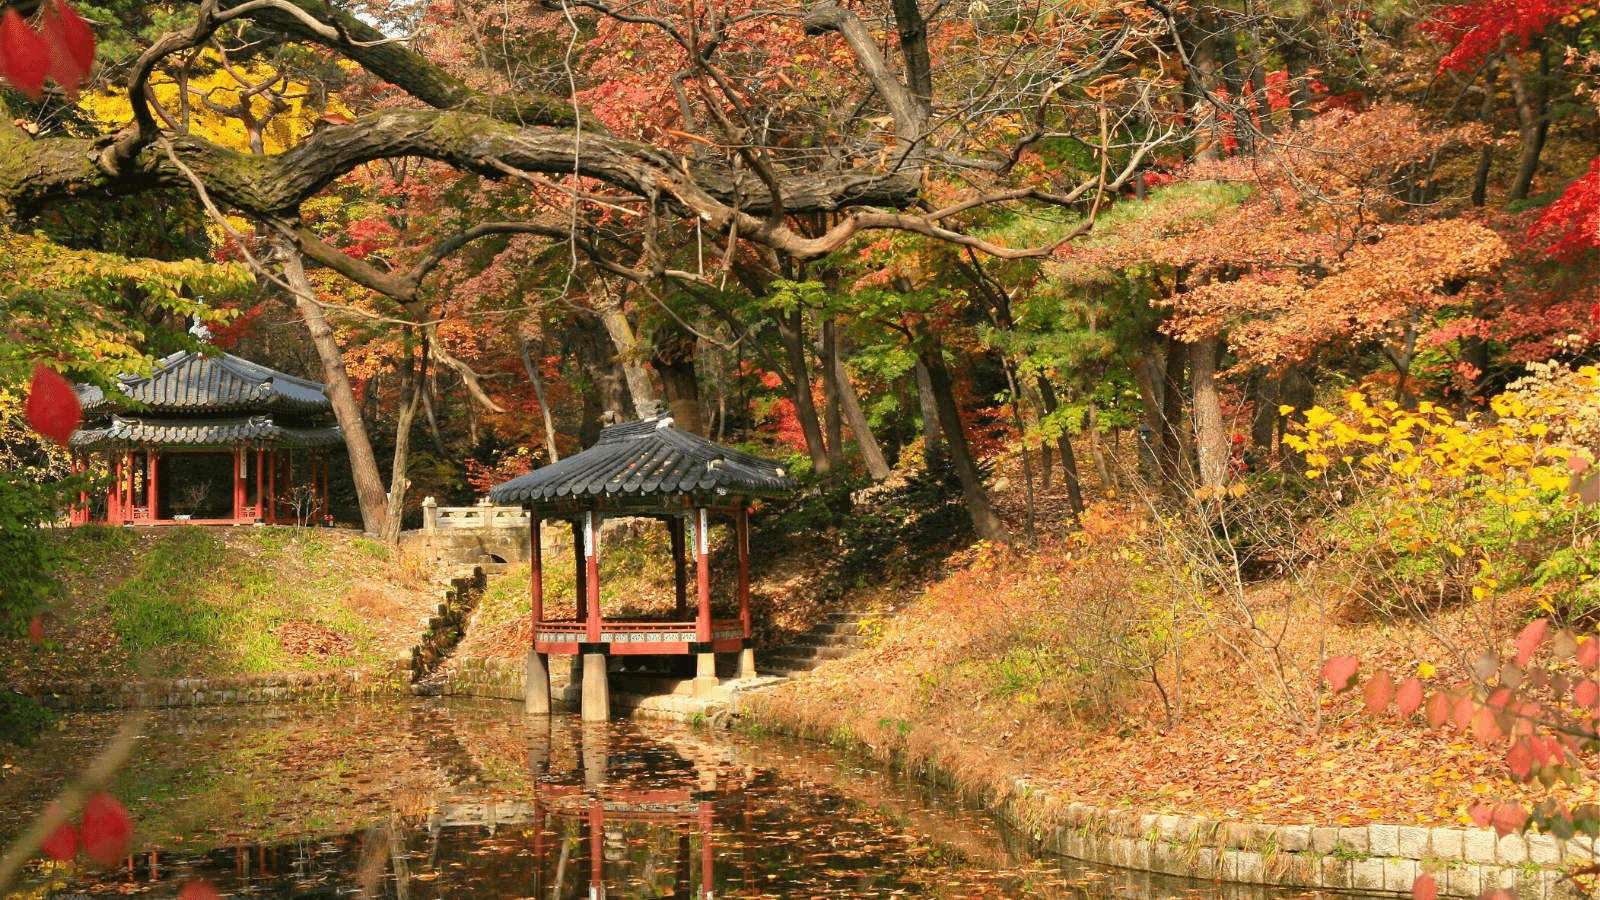 Changdeokgung Palace and Huwon